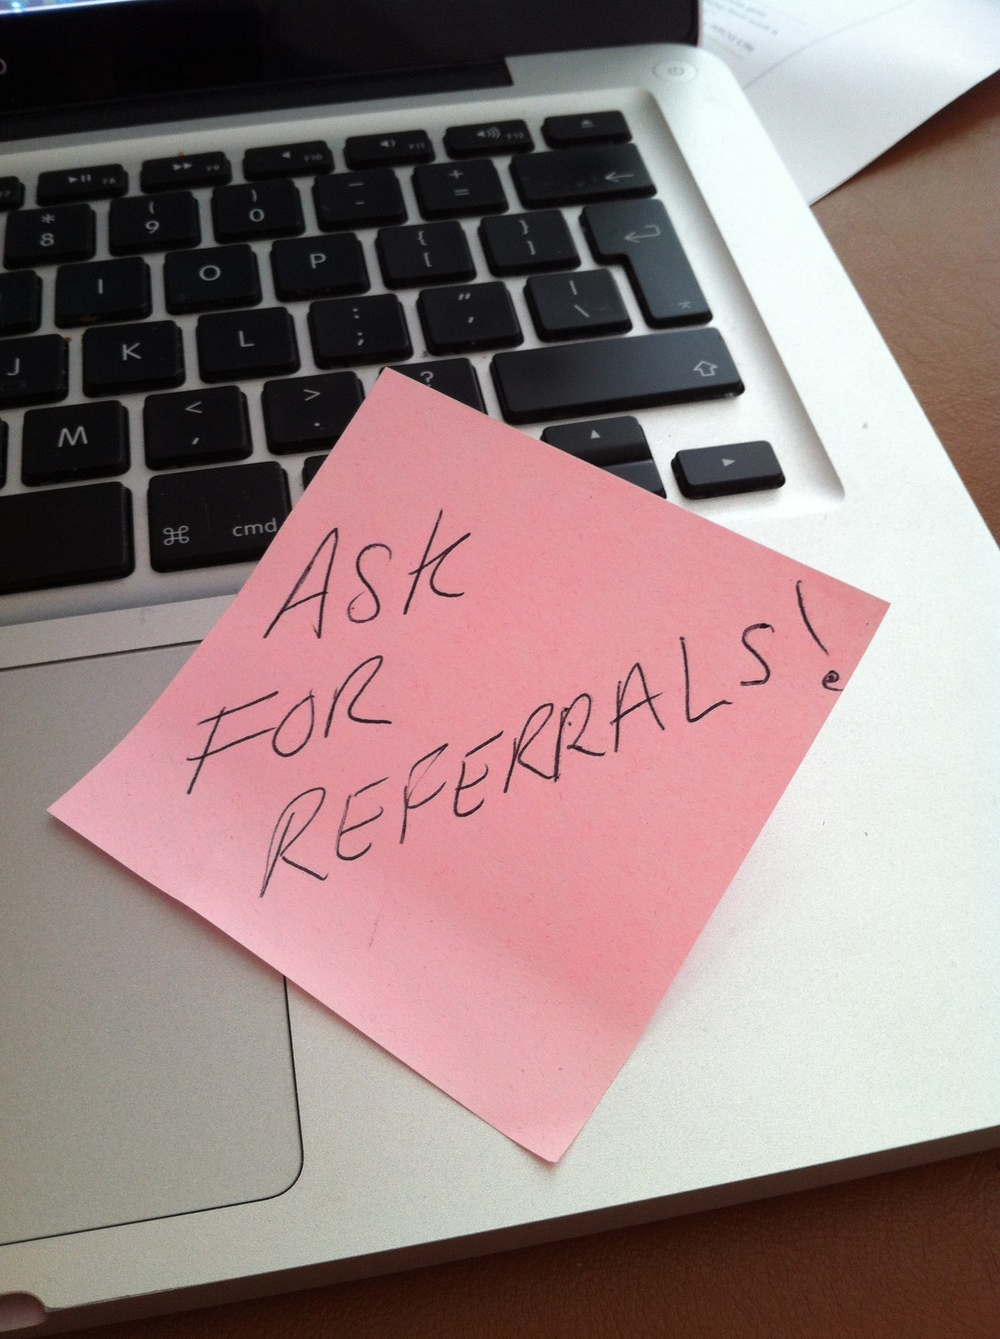 Ask-for-referrals.jpg